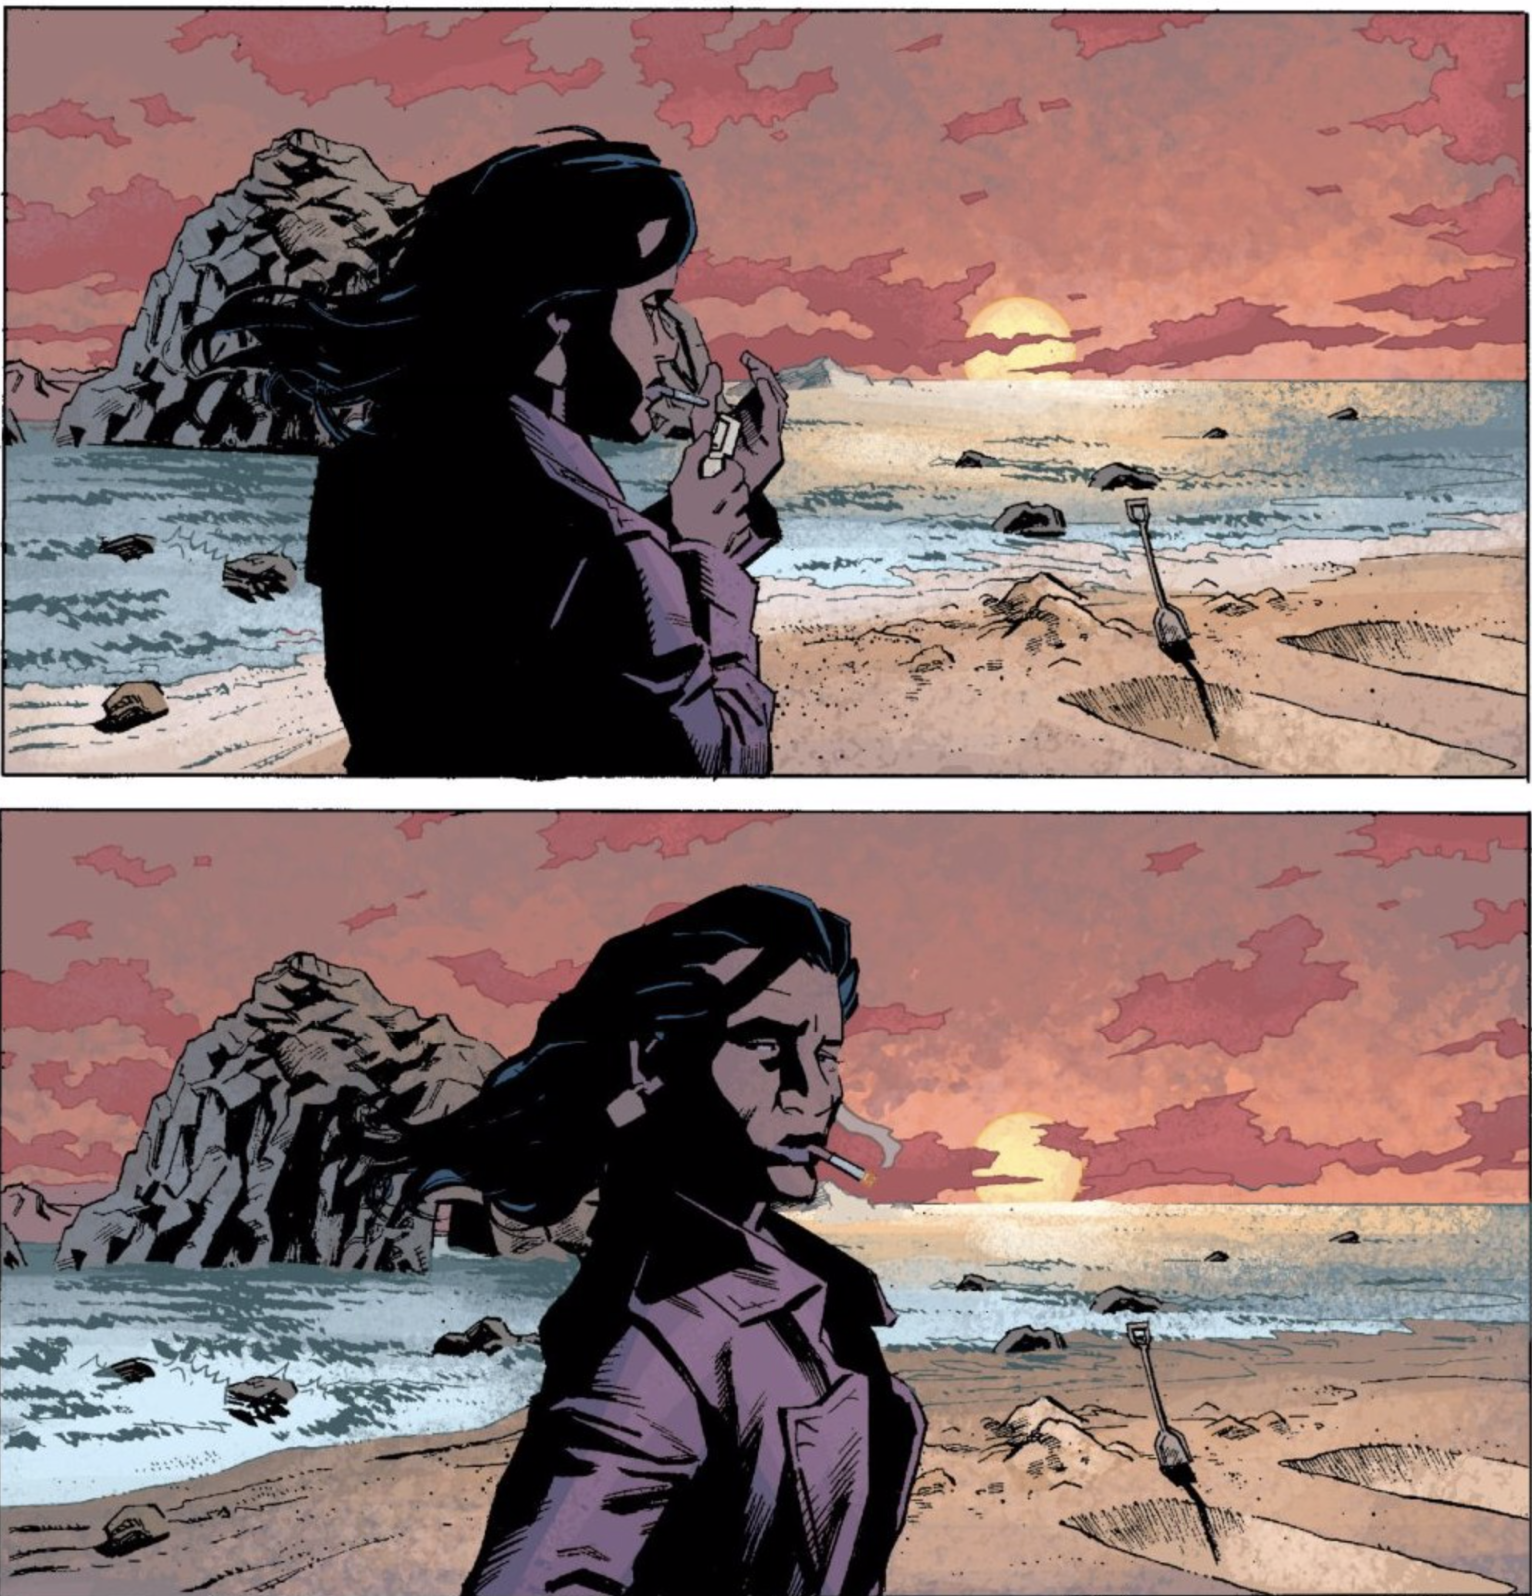 From page 108, two panels of Jackie smoking at a beach, with two dug graves behind her.